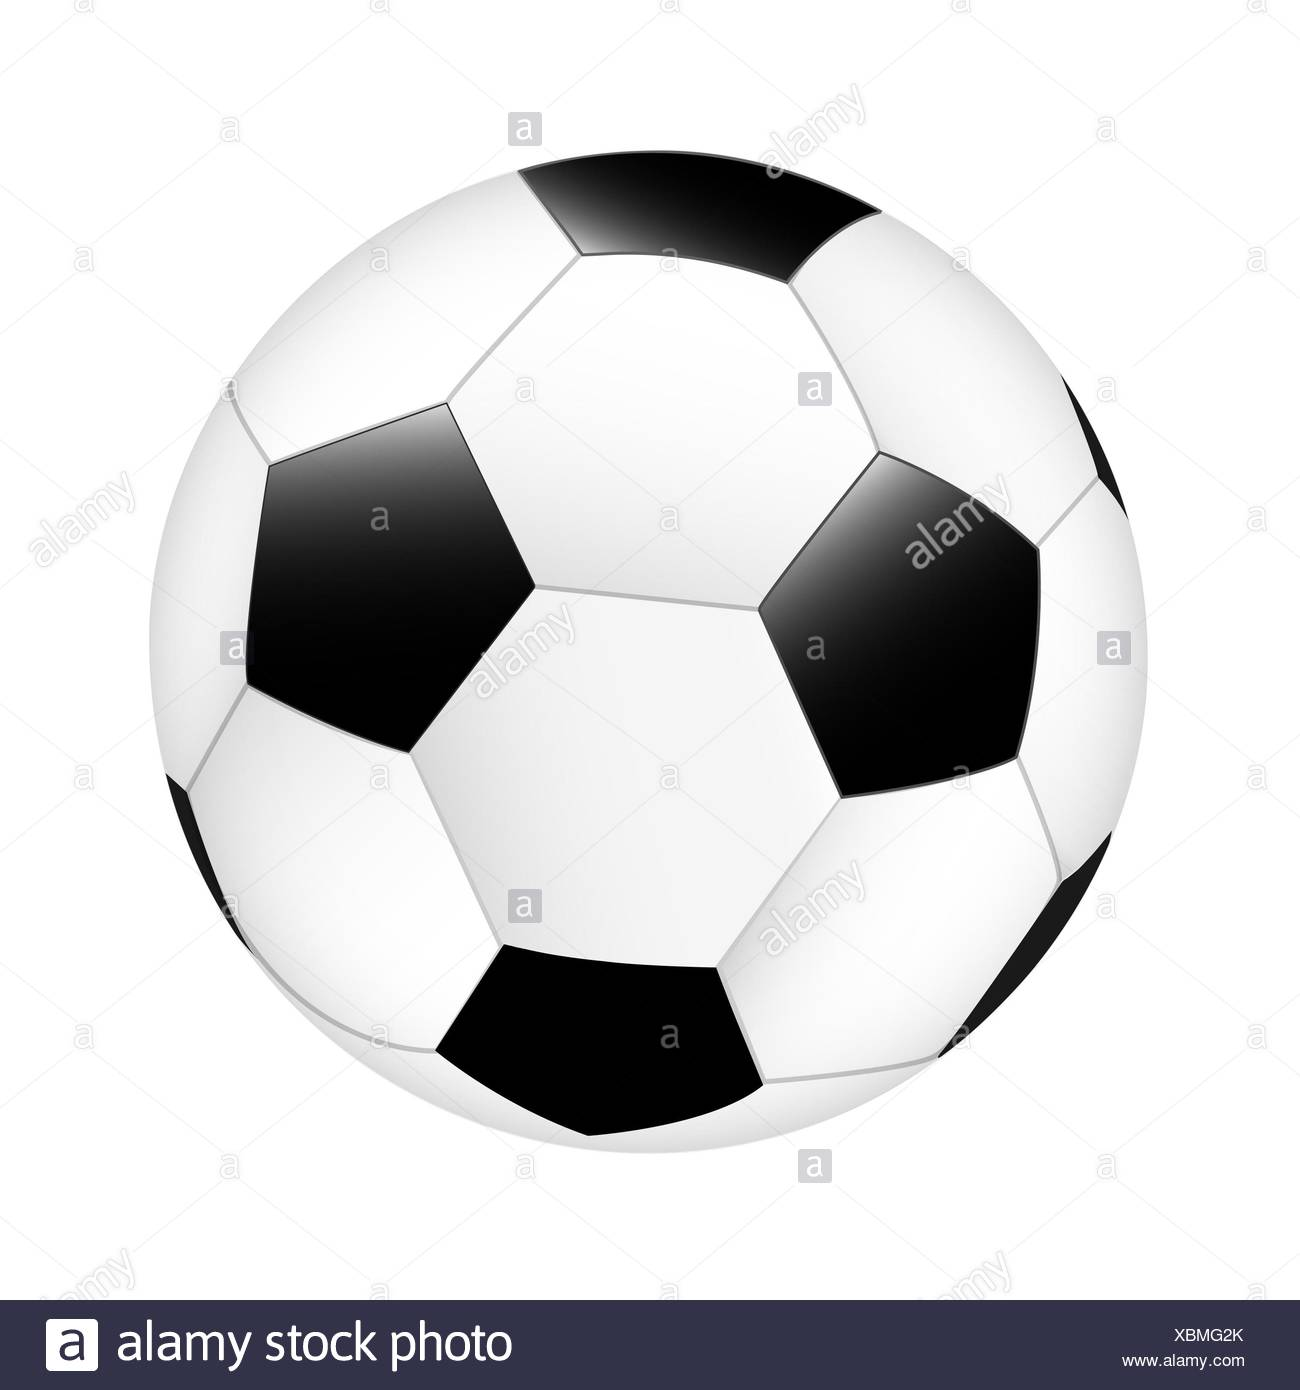 sport sports games - Stock Image